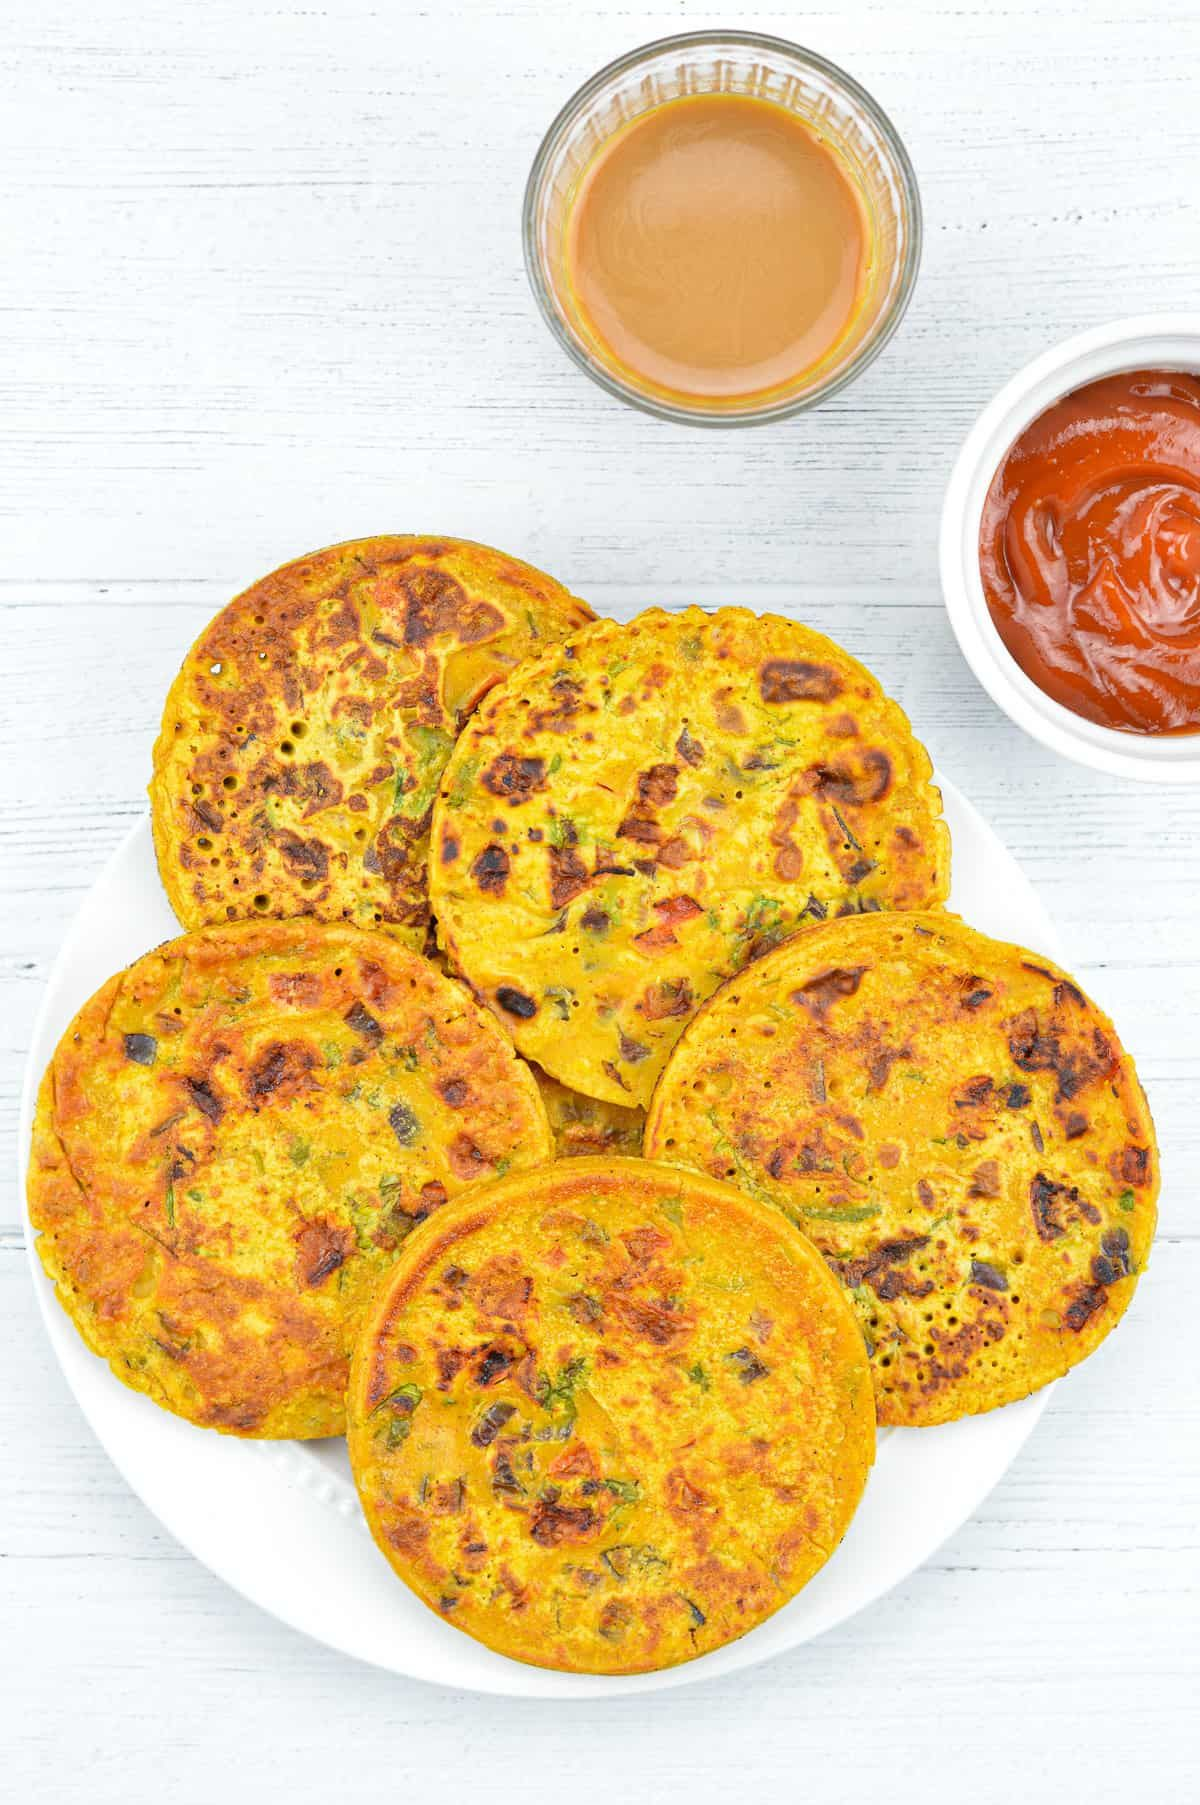 Besan Chilla / Indian Tomato Omelette - A quick and easy Indian breakfast recipe / tea time snack. Click over to know how to make healthy besan chilla, an Indian savory pancake that is naturally vegan and gluten free - with step by step photos and instructions. #besanchilla #tomatoomelette #indianbreakfast #indianbreakfastrecipes #indiansnacks #indianvegetarianrecipes